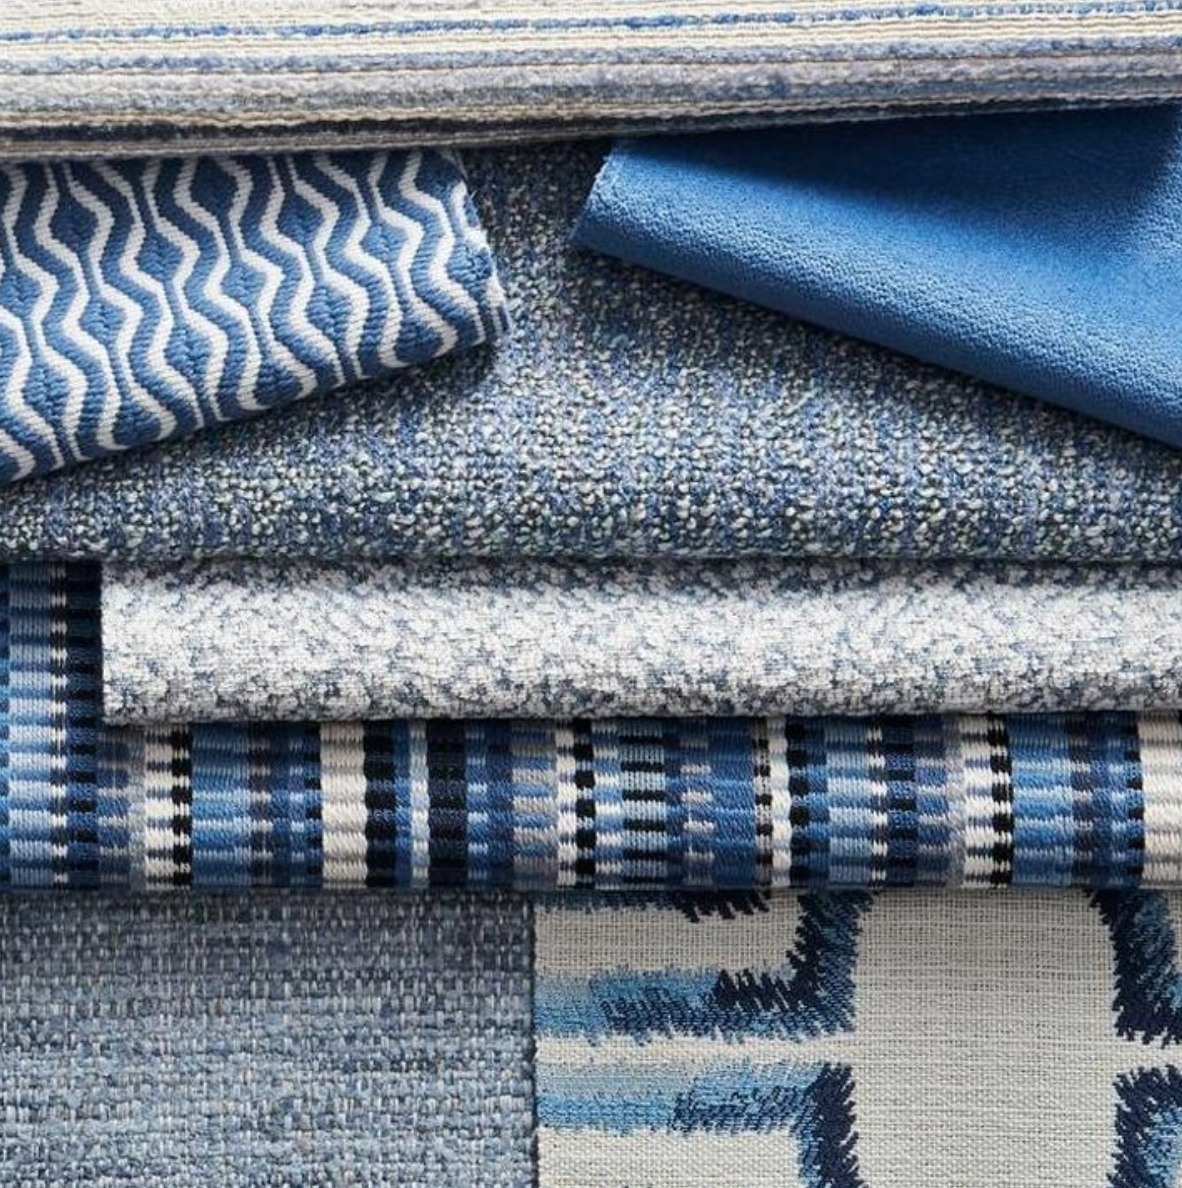 Classic Blue. Not only it's our color of the year but it is also associated with calmness, contentment, peace, and harmony. How will you incorporate this gorgeous color in your home? 💙#decowindowfashions #pantoneclassicblue  . . . #classicblue #fabricut #interiordesign #moodboard #interiordesigninspo #beautifulblues #relaxingblues #calmingcolors